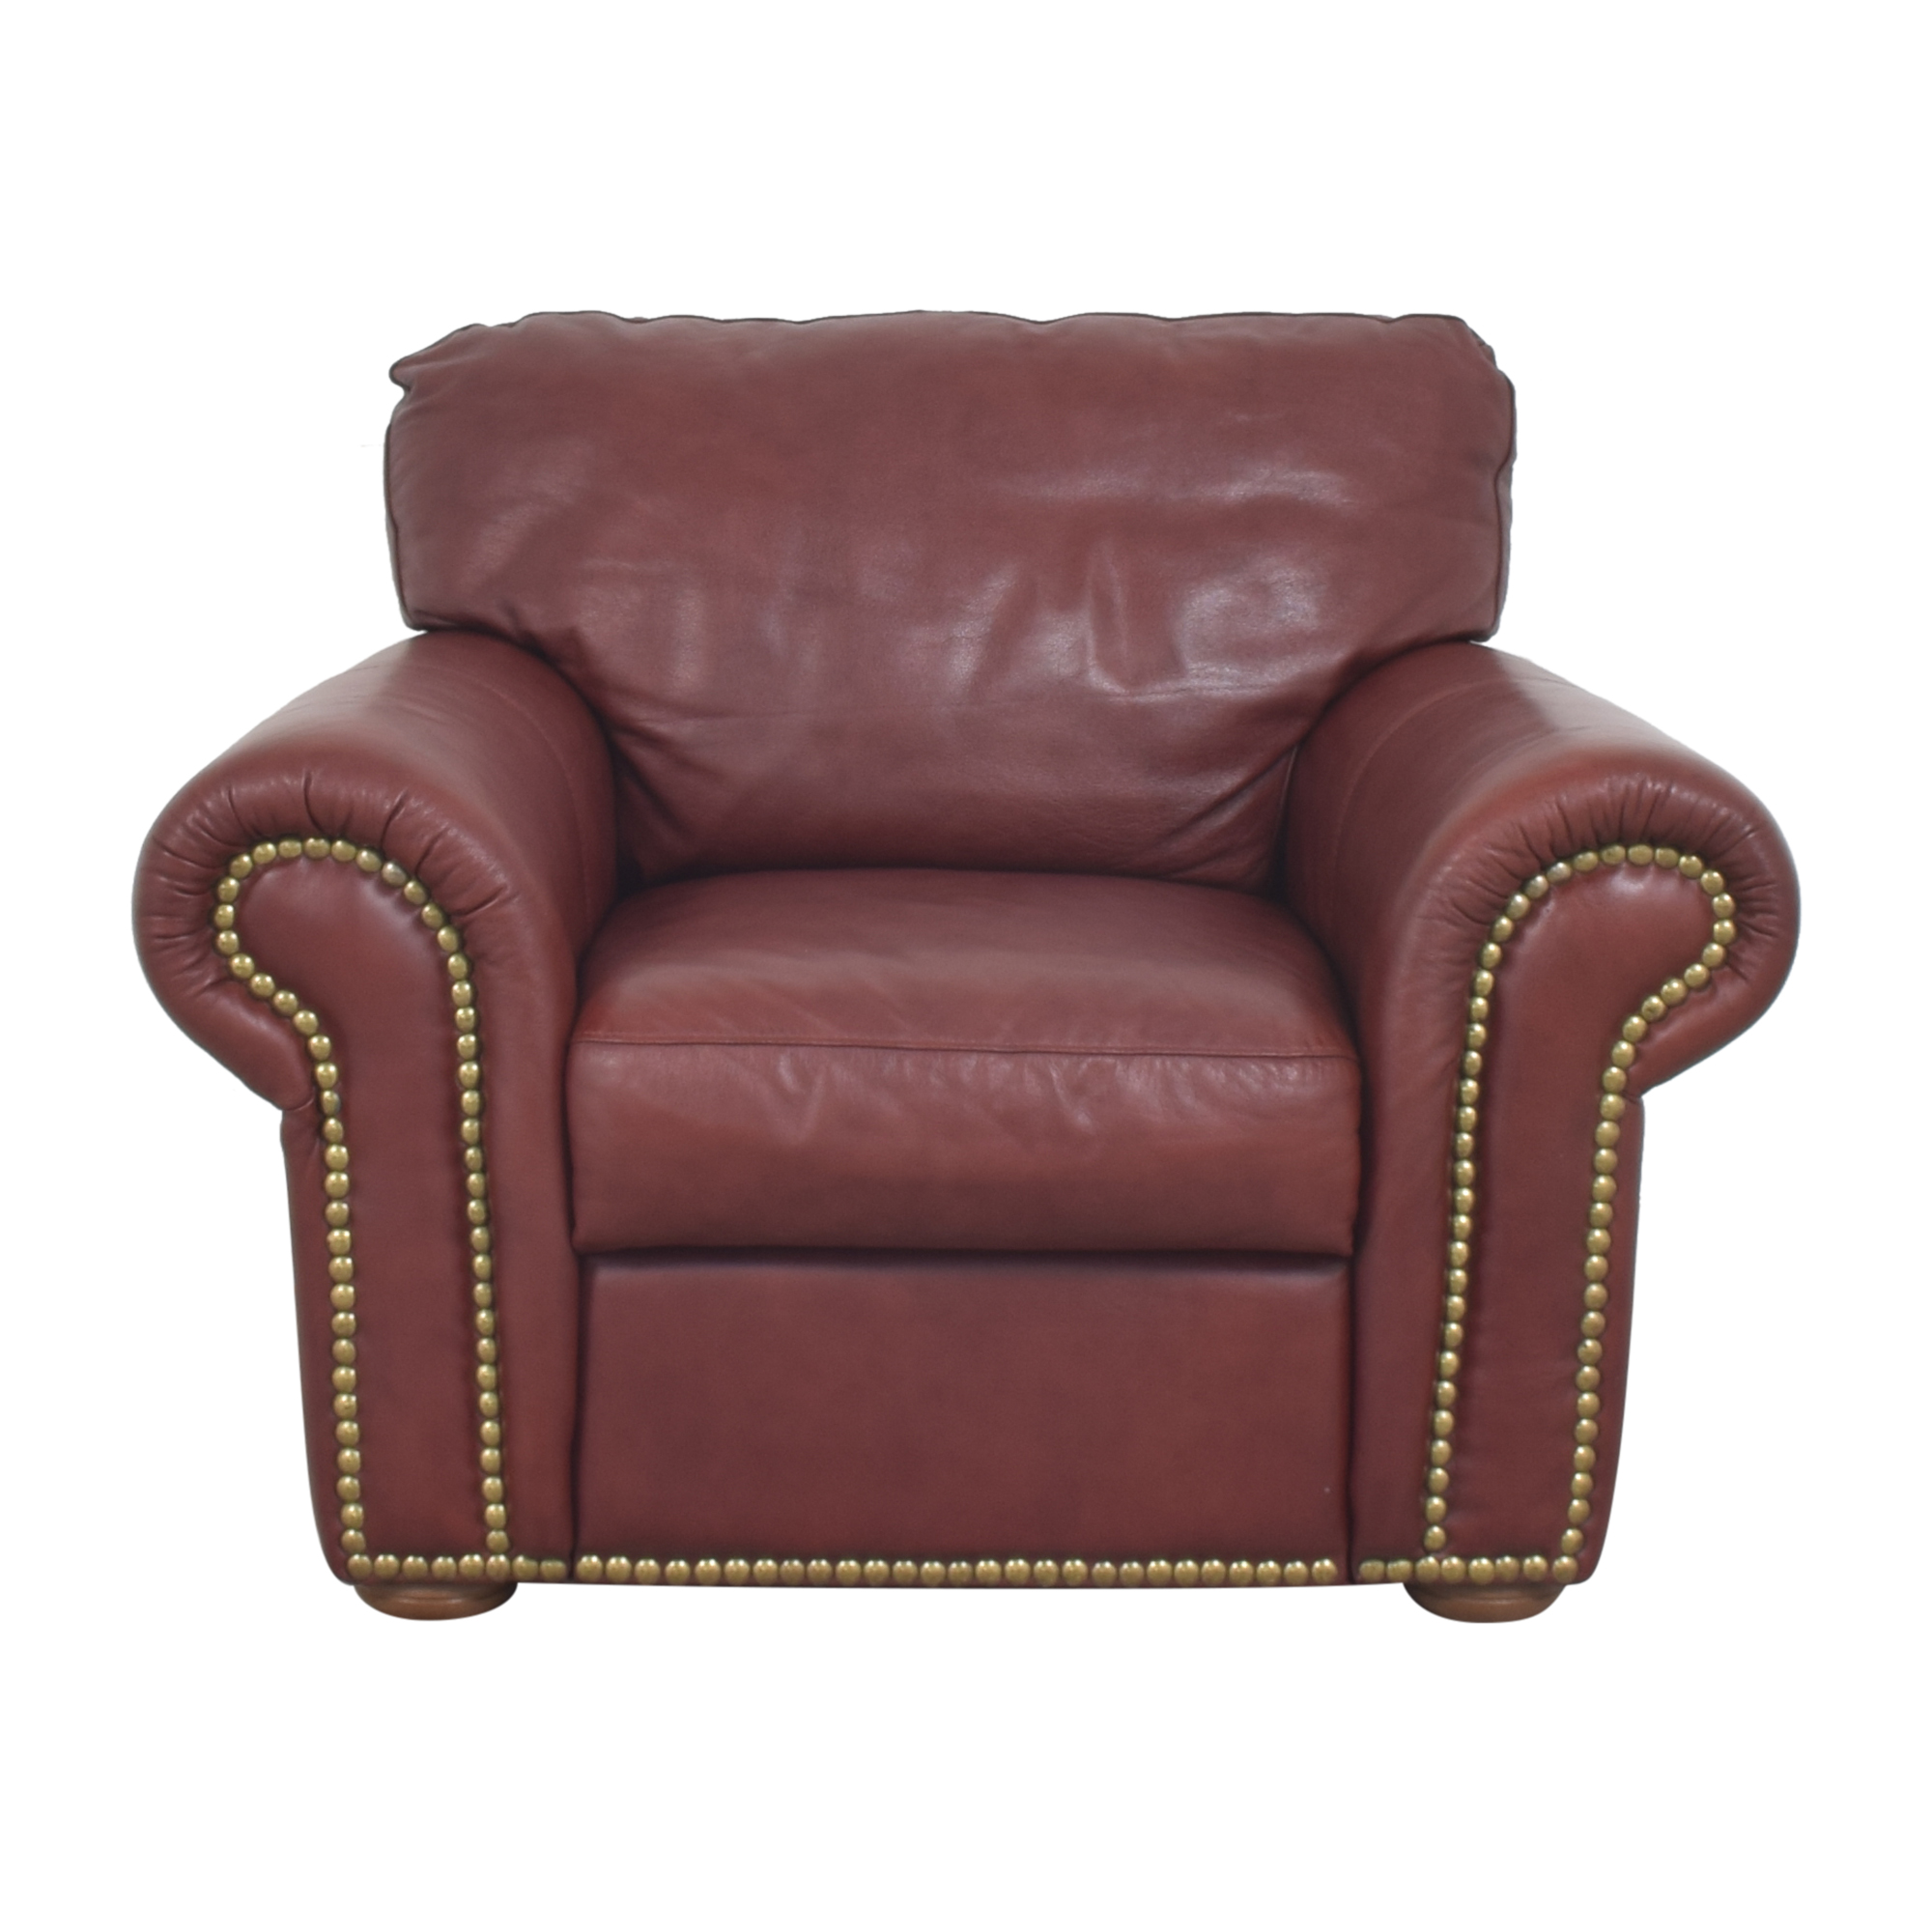 Macy's Macy's Nailhead Roll Arm Chair discount